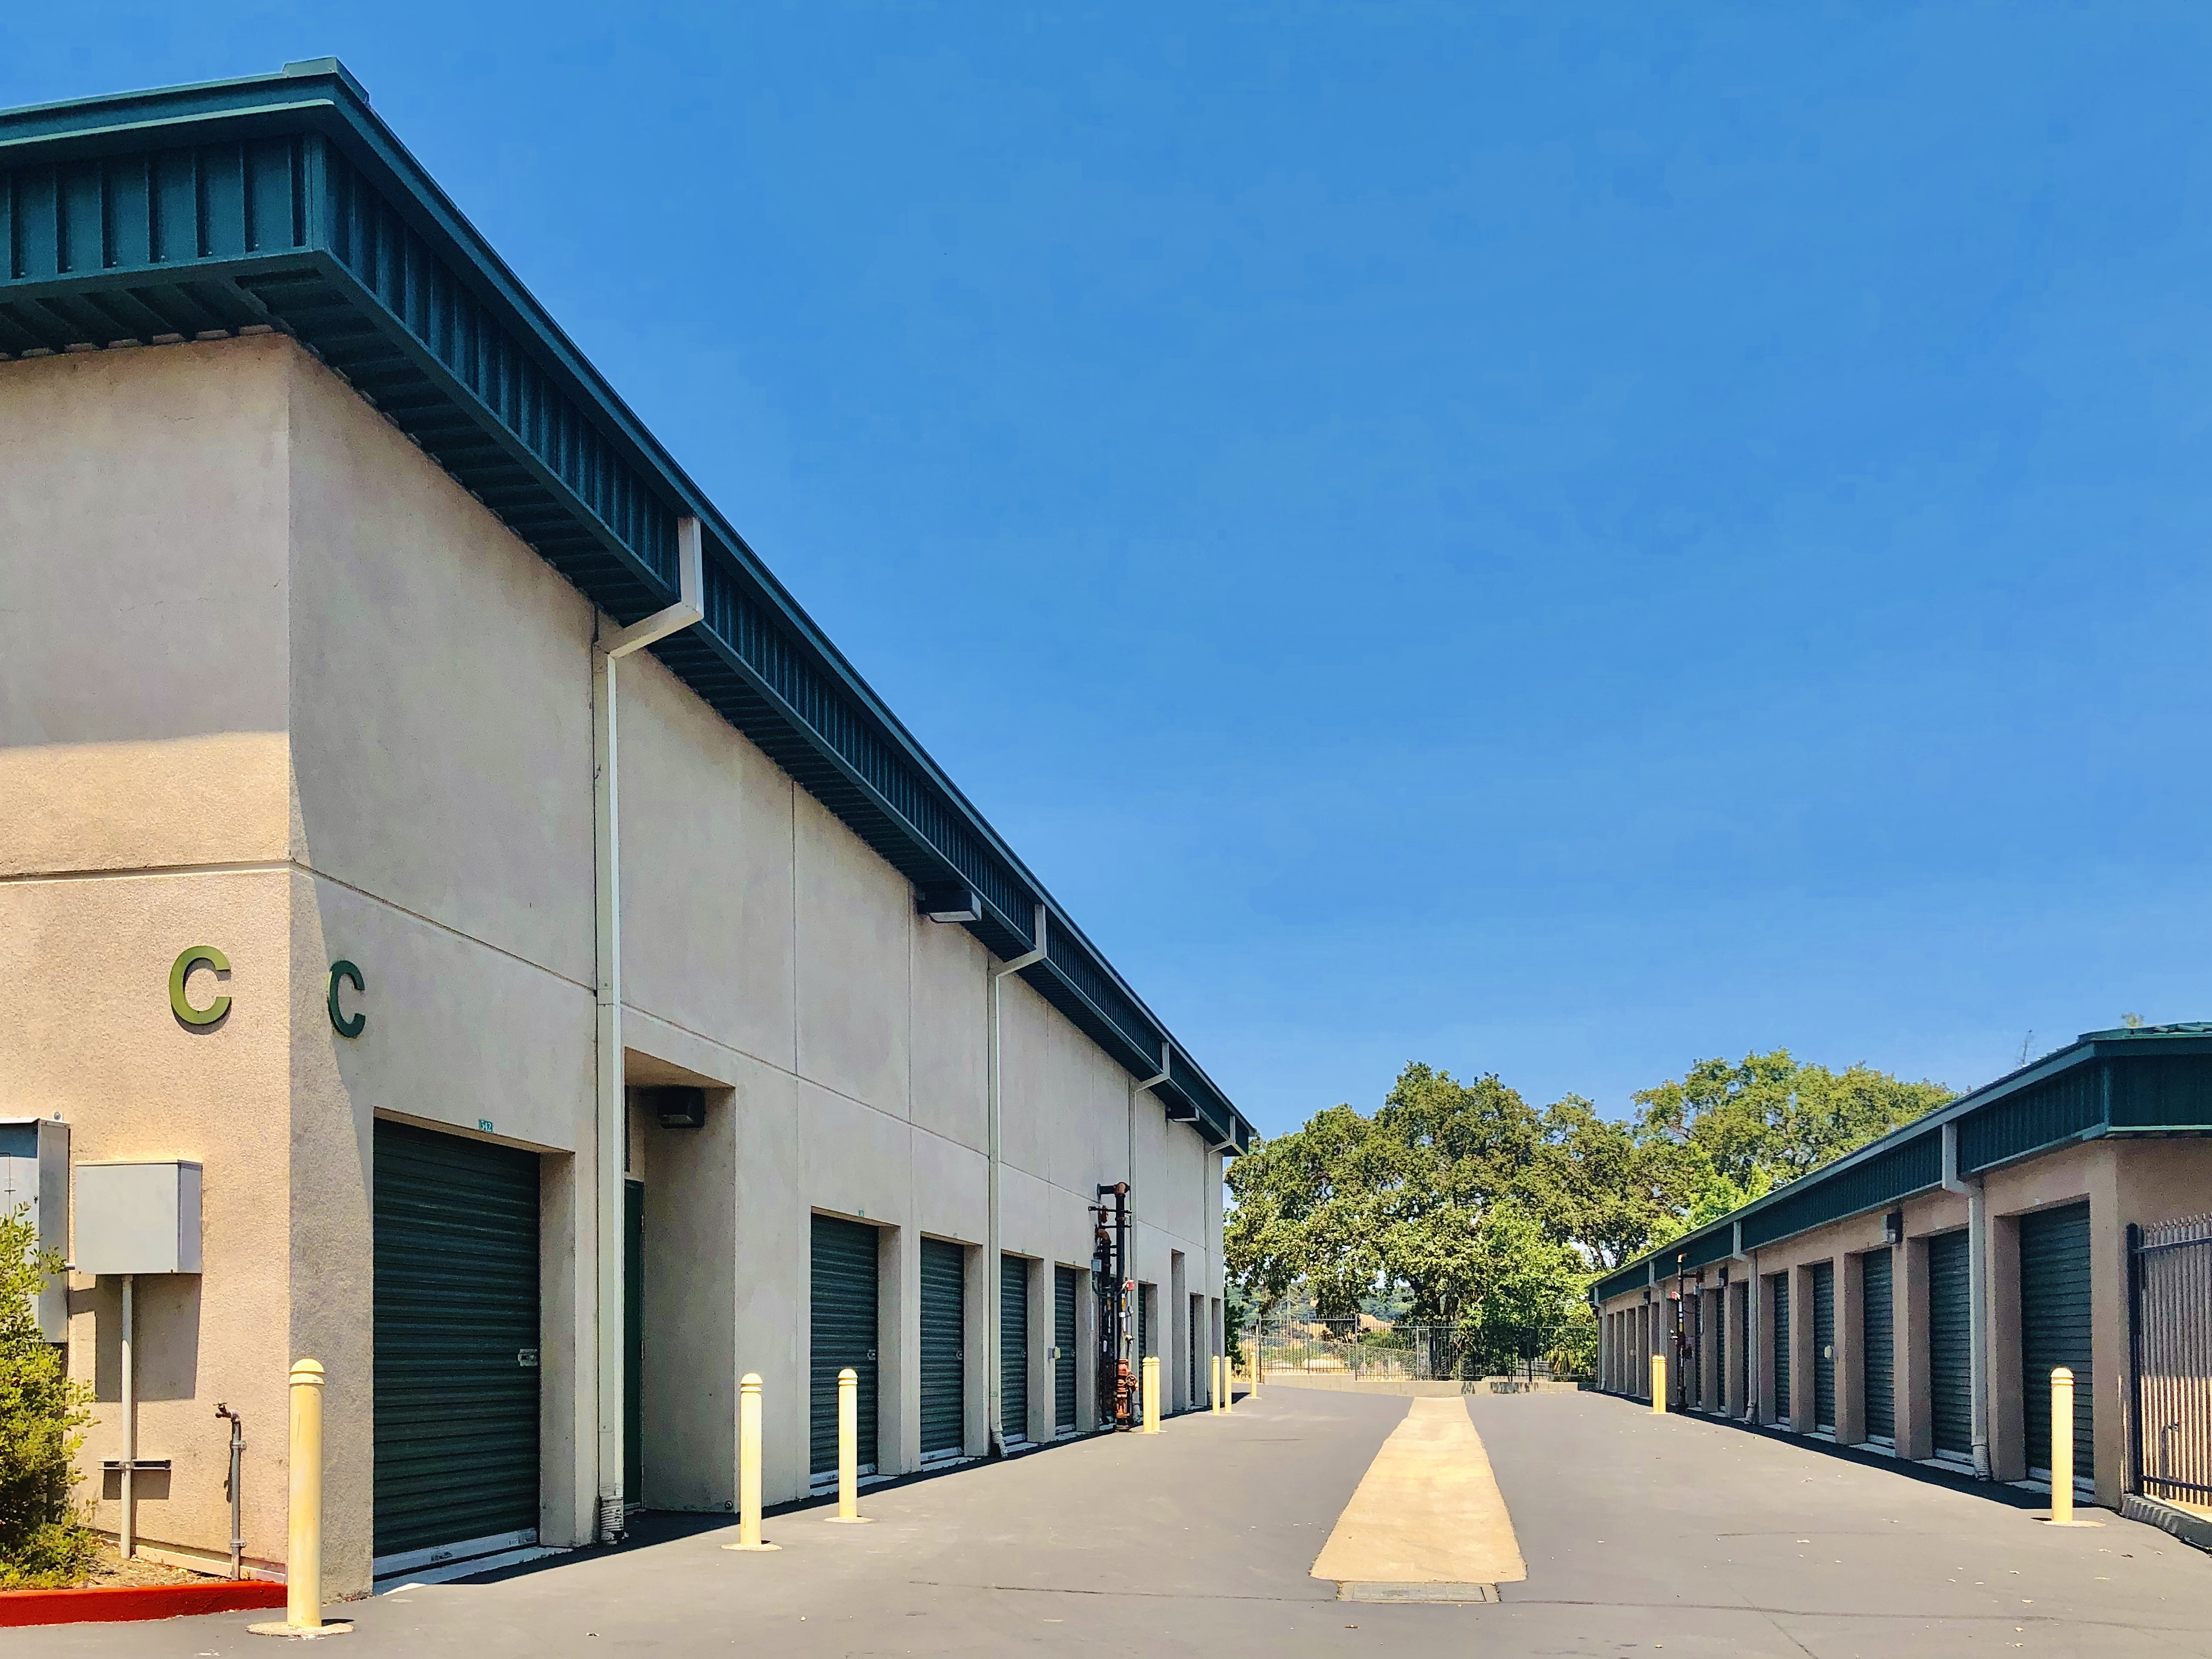 Storage Facility buildings